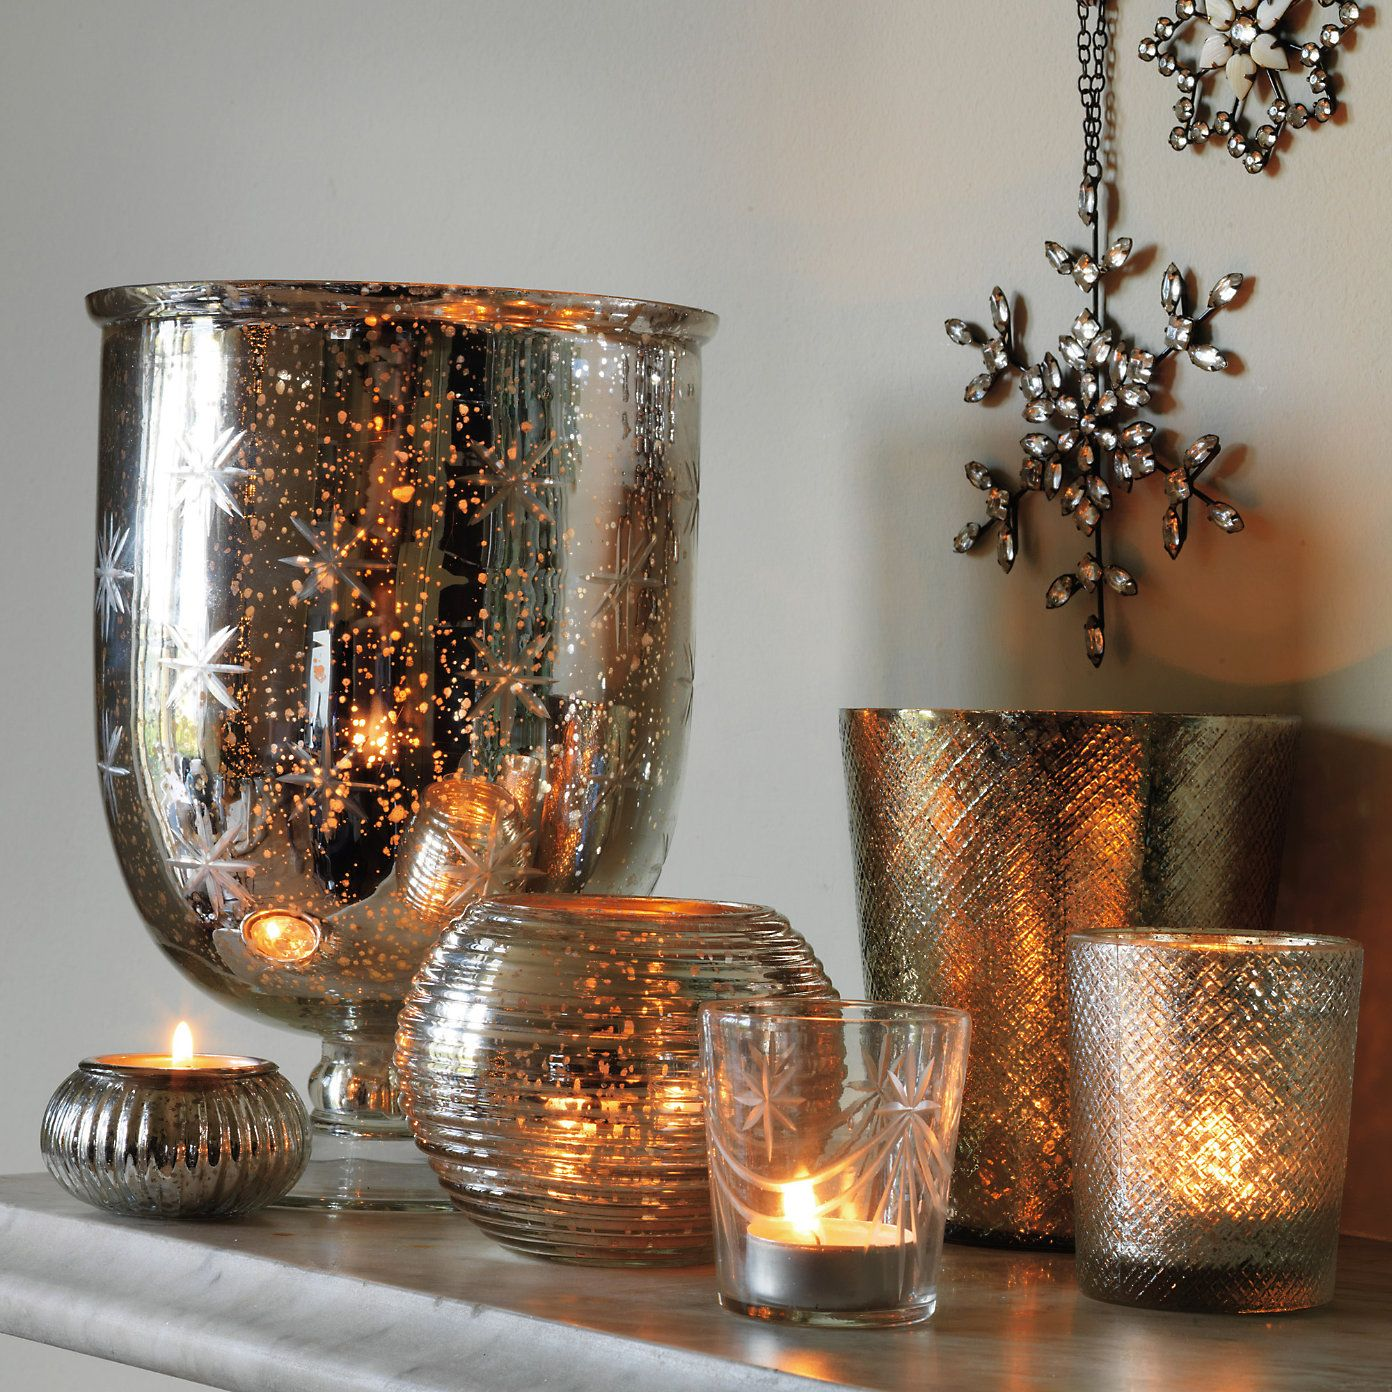 Home Decor Candle Holders And Accessories: Buy Home Accessories > Candle Holders > Star Glass